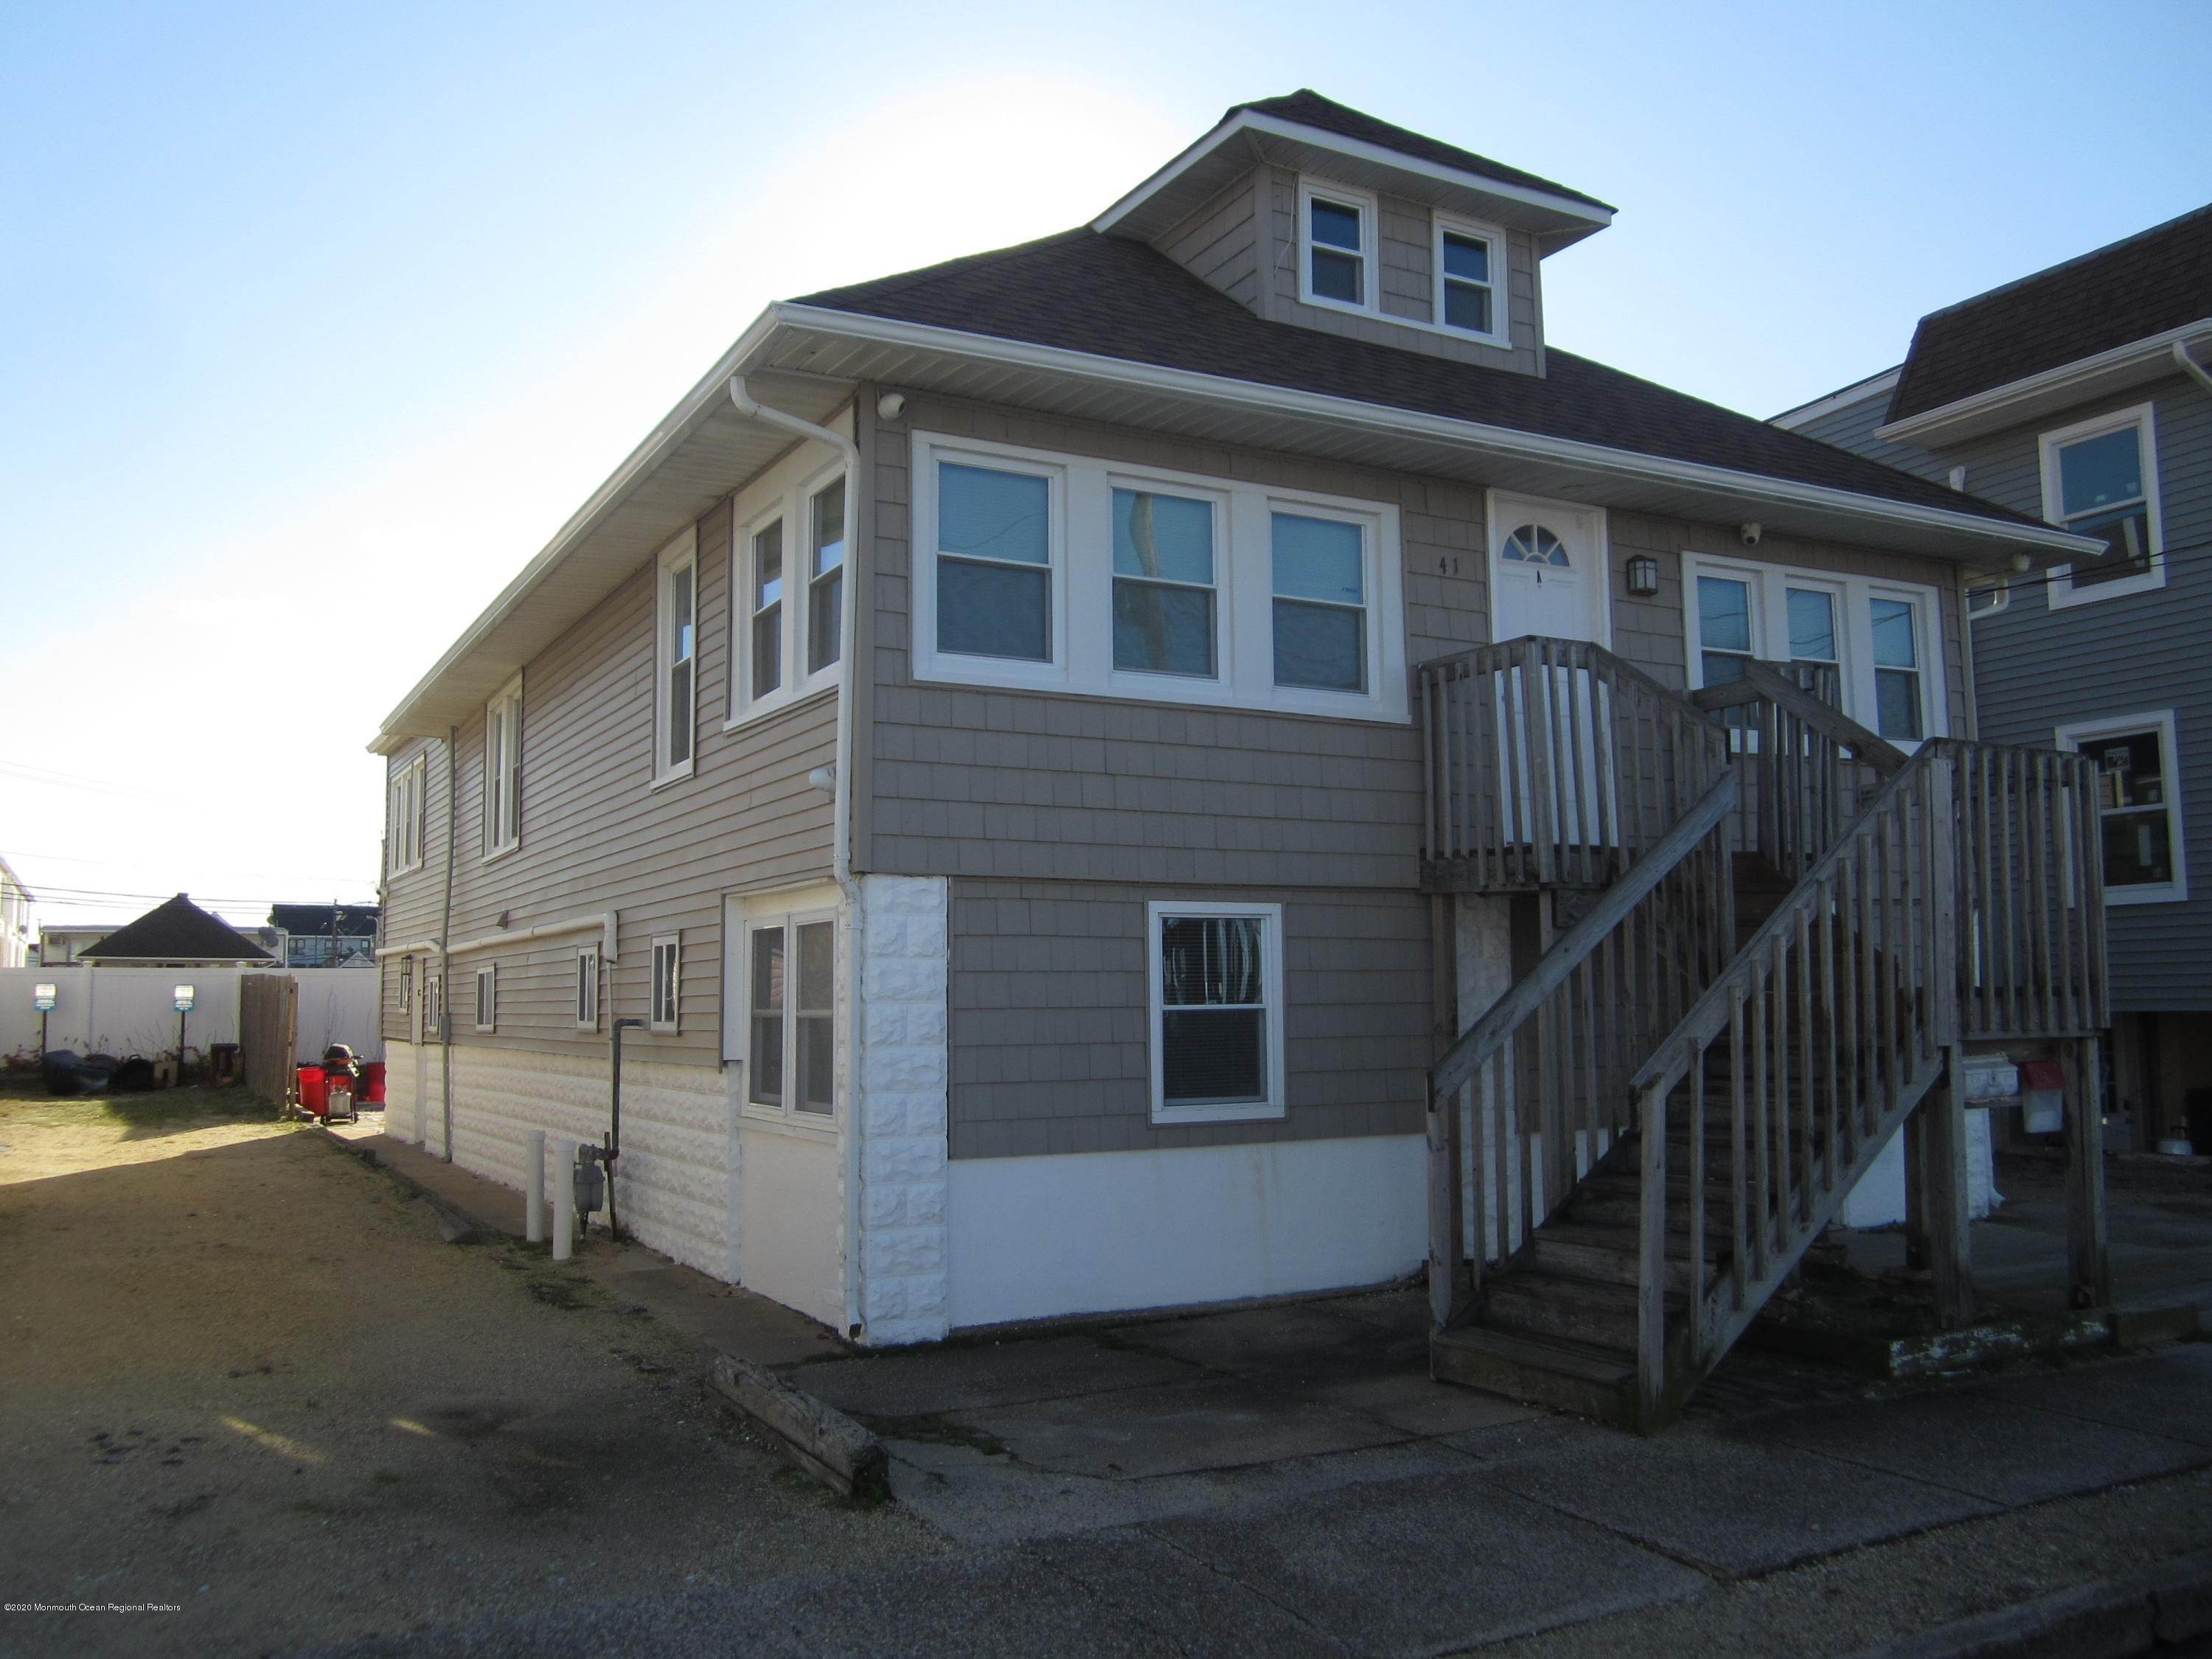 Multi-Family Homes for Sale at 39 Blaine Avenue Seaside Heights, New Jersey 08751 United States